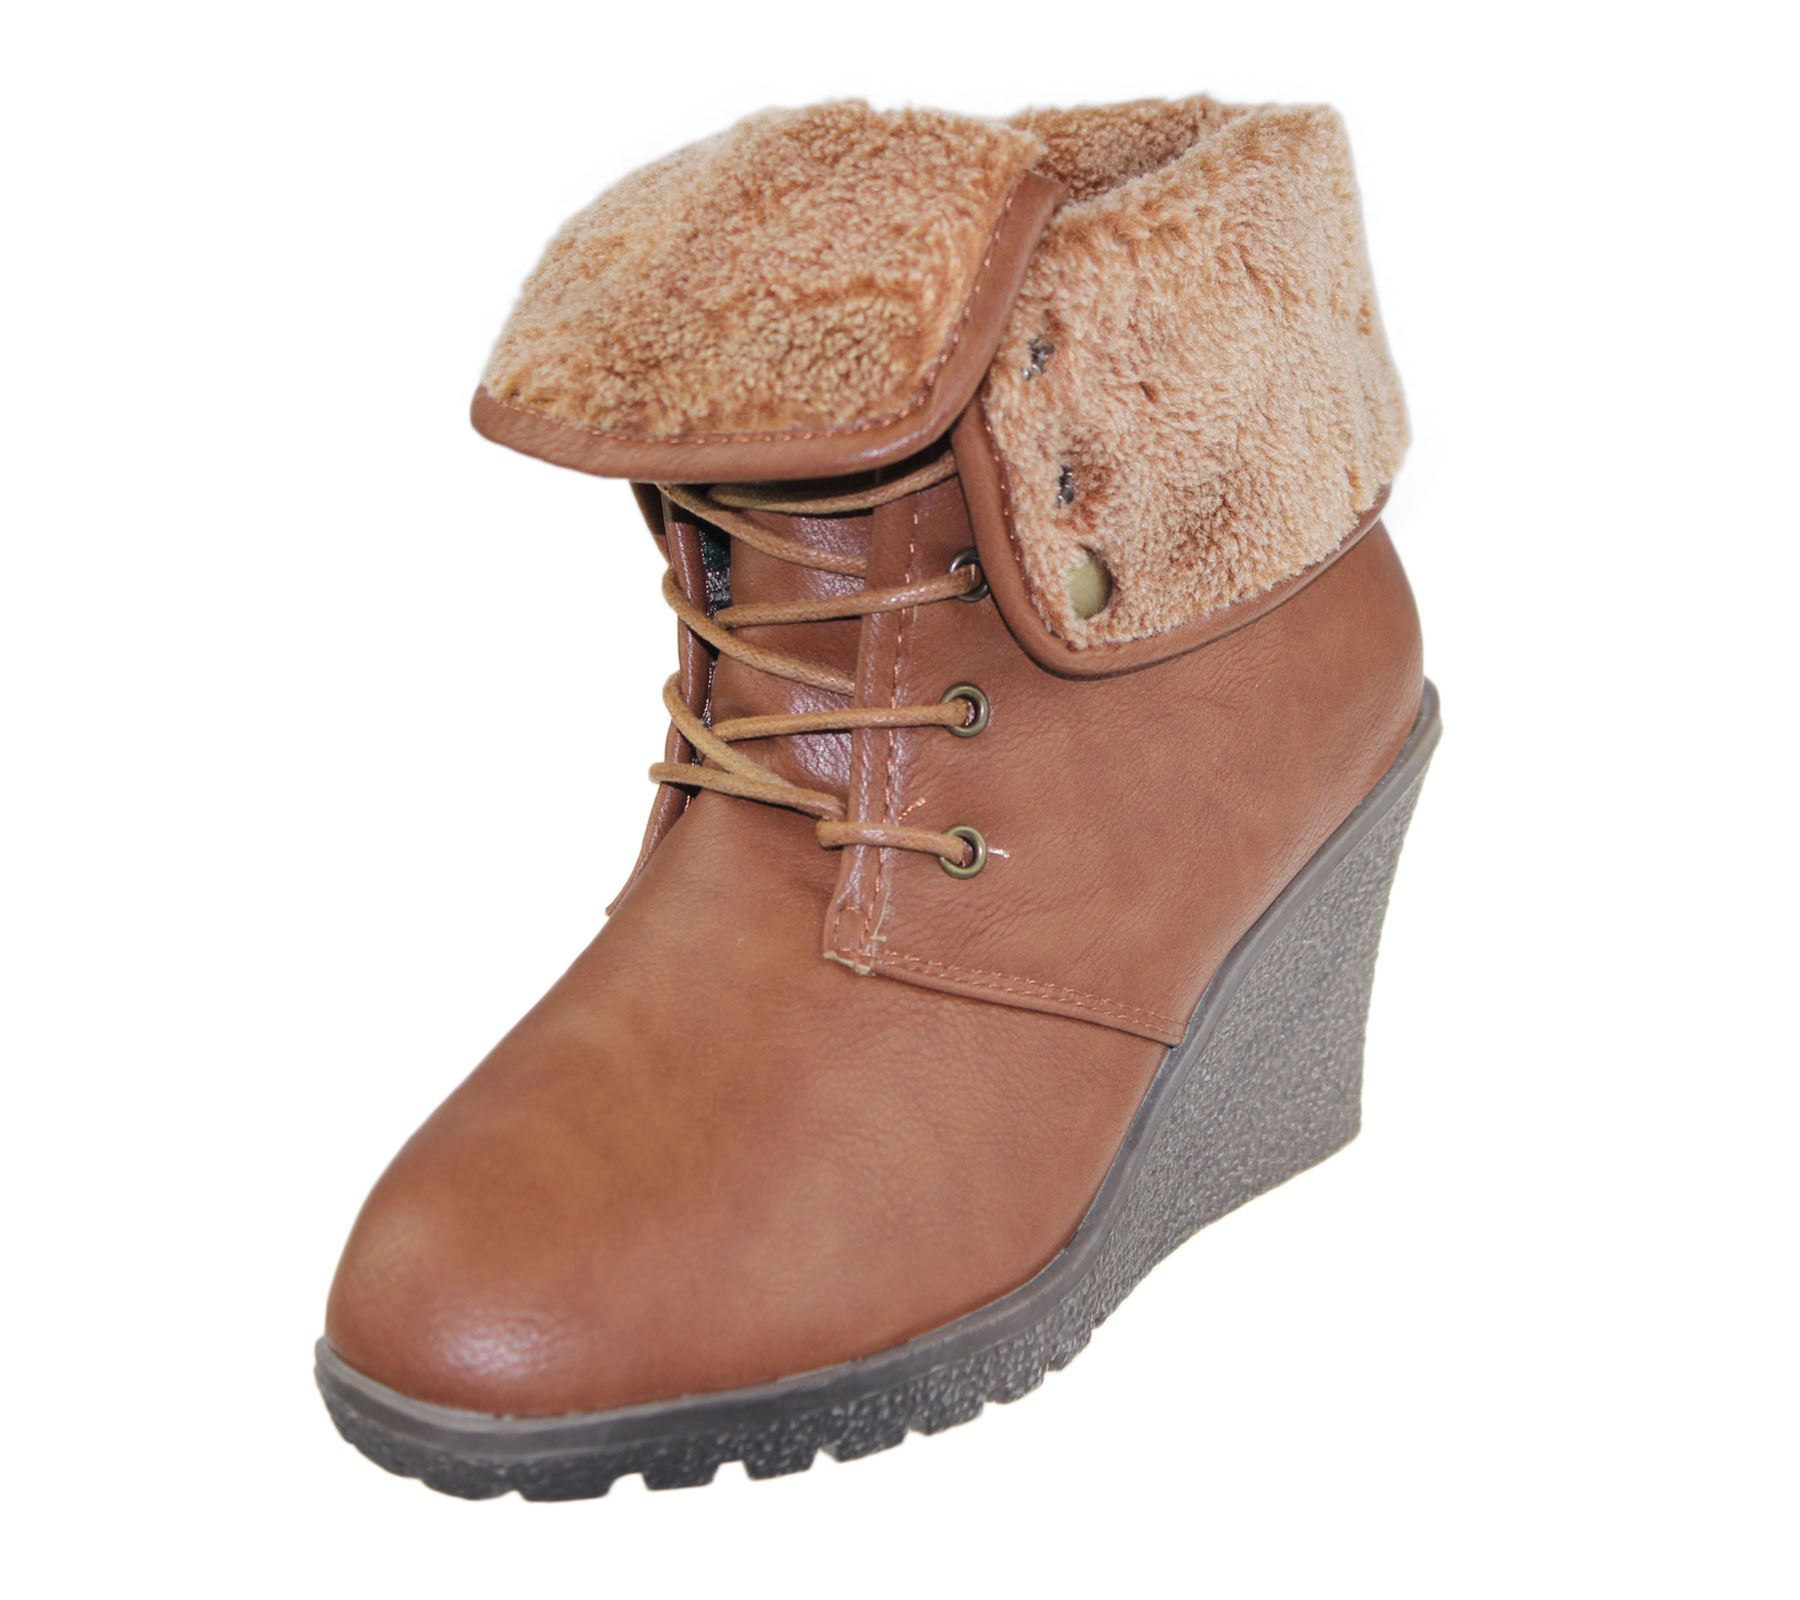 Womens Ankle Boots Ladies Fur Collar Trainer Sneaker Wedge ...